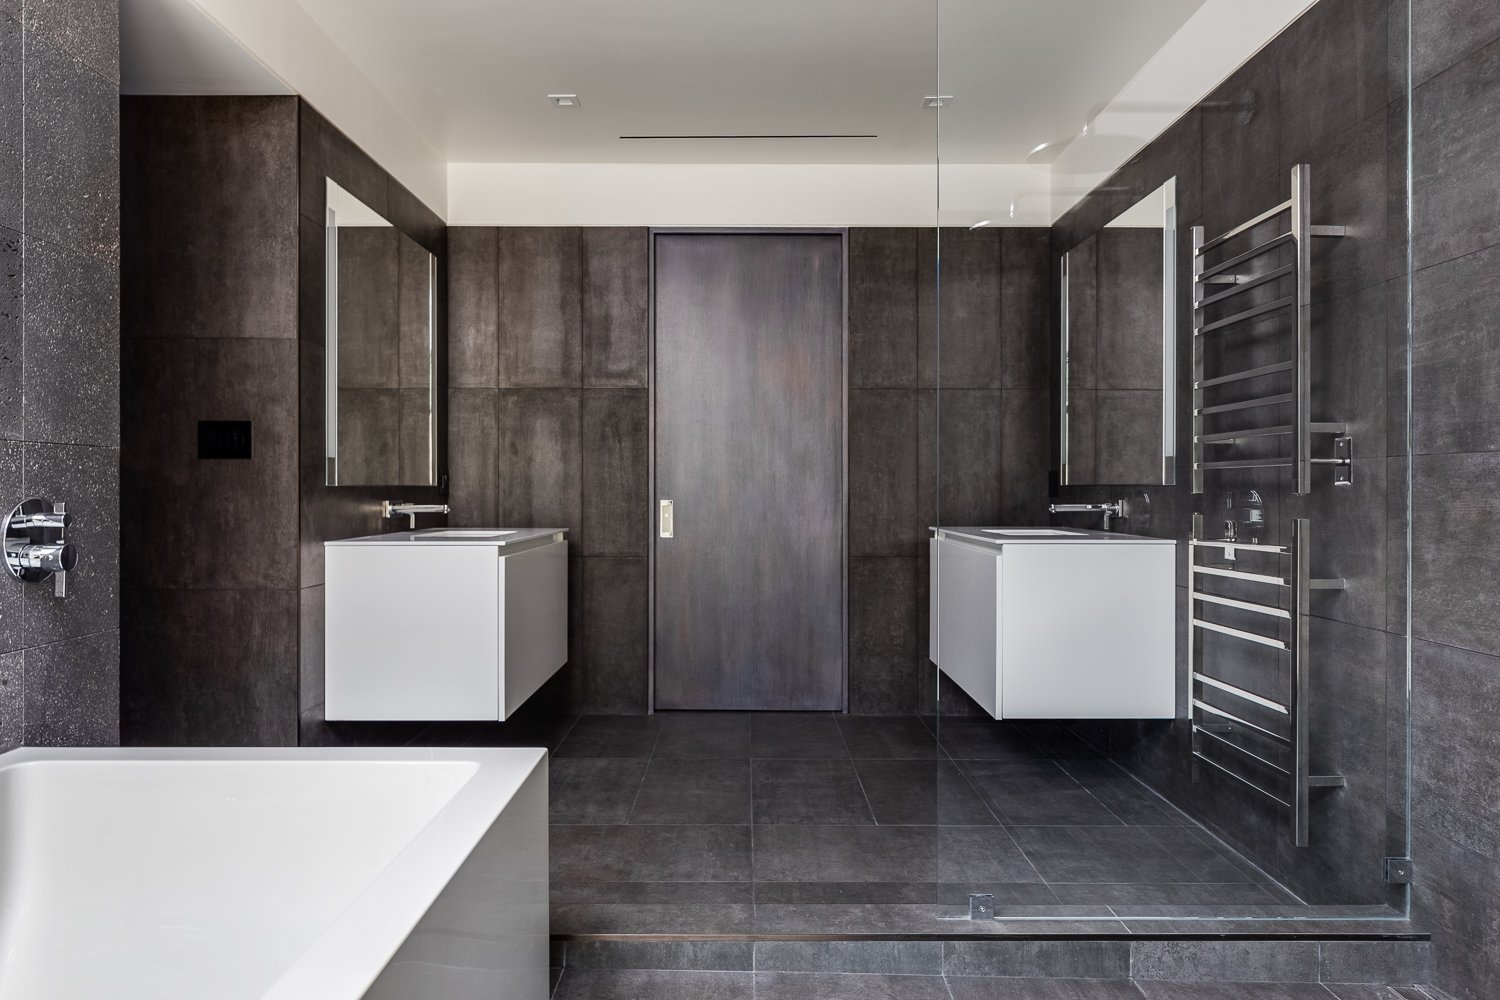 Bath Room, Undermount Sink, Freestanding Tub, Soaking Tub, Cement Tile Floor, Open Shower, and Ceiling Lighting Master Bathroom - White thermafoil floating vanities, Duravit and Hansgrohe fixtures, Large-format Italian porcelain tile from Emil Ceramica  Castro Residence by Diego Pacheco Design Practice